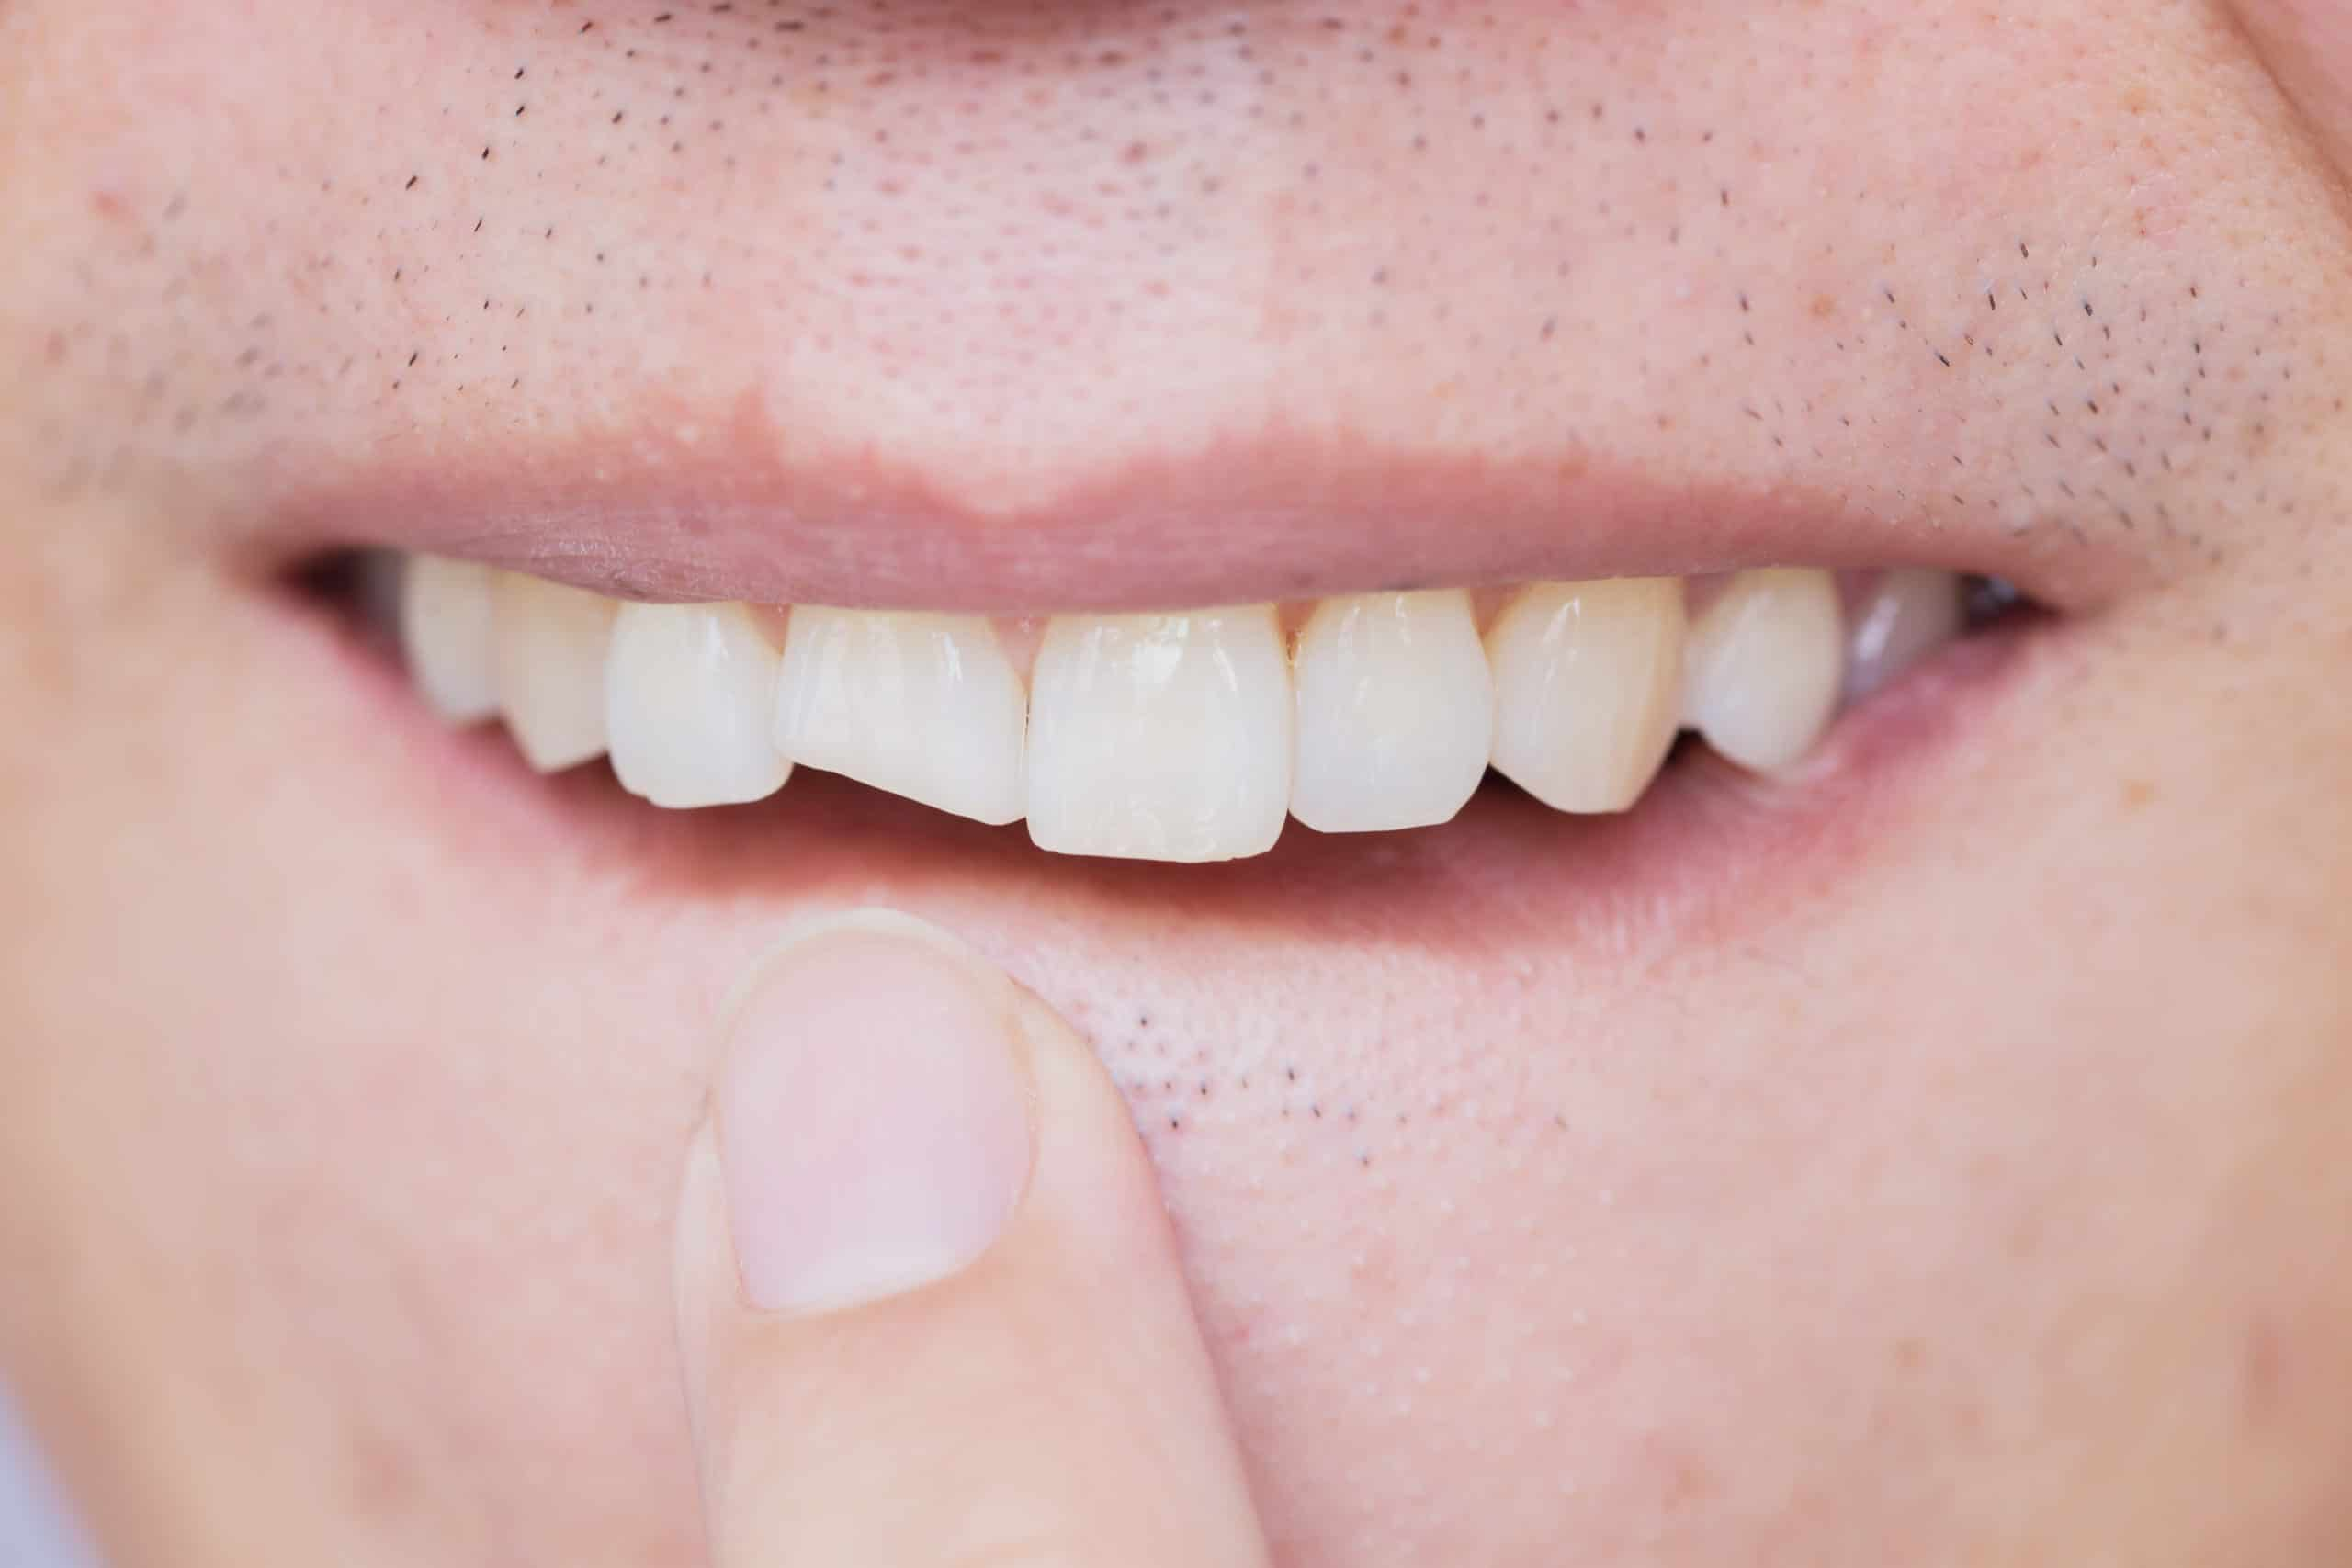 Dealing with Chipped Teeth